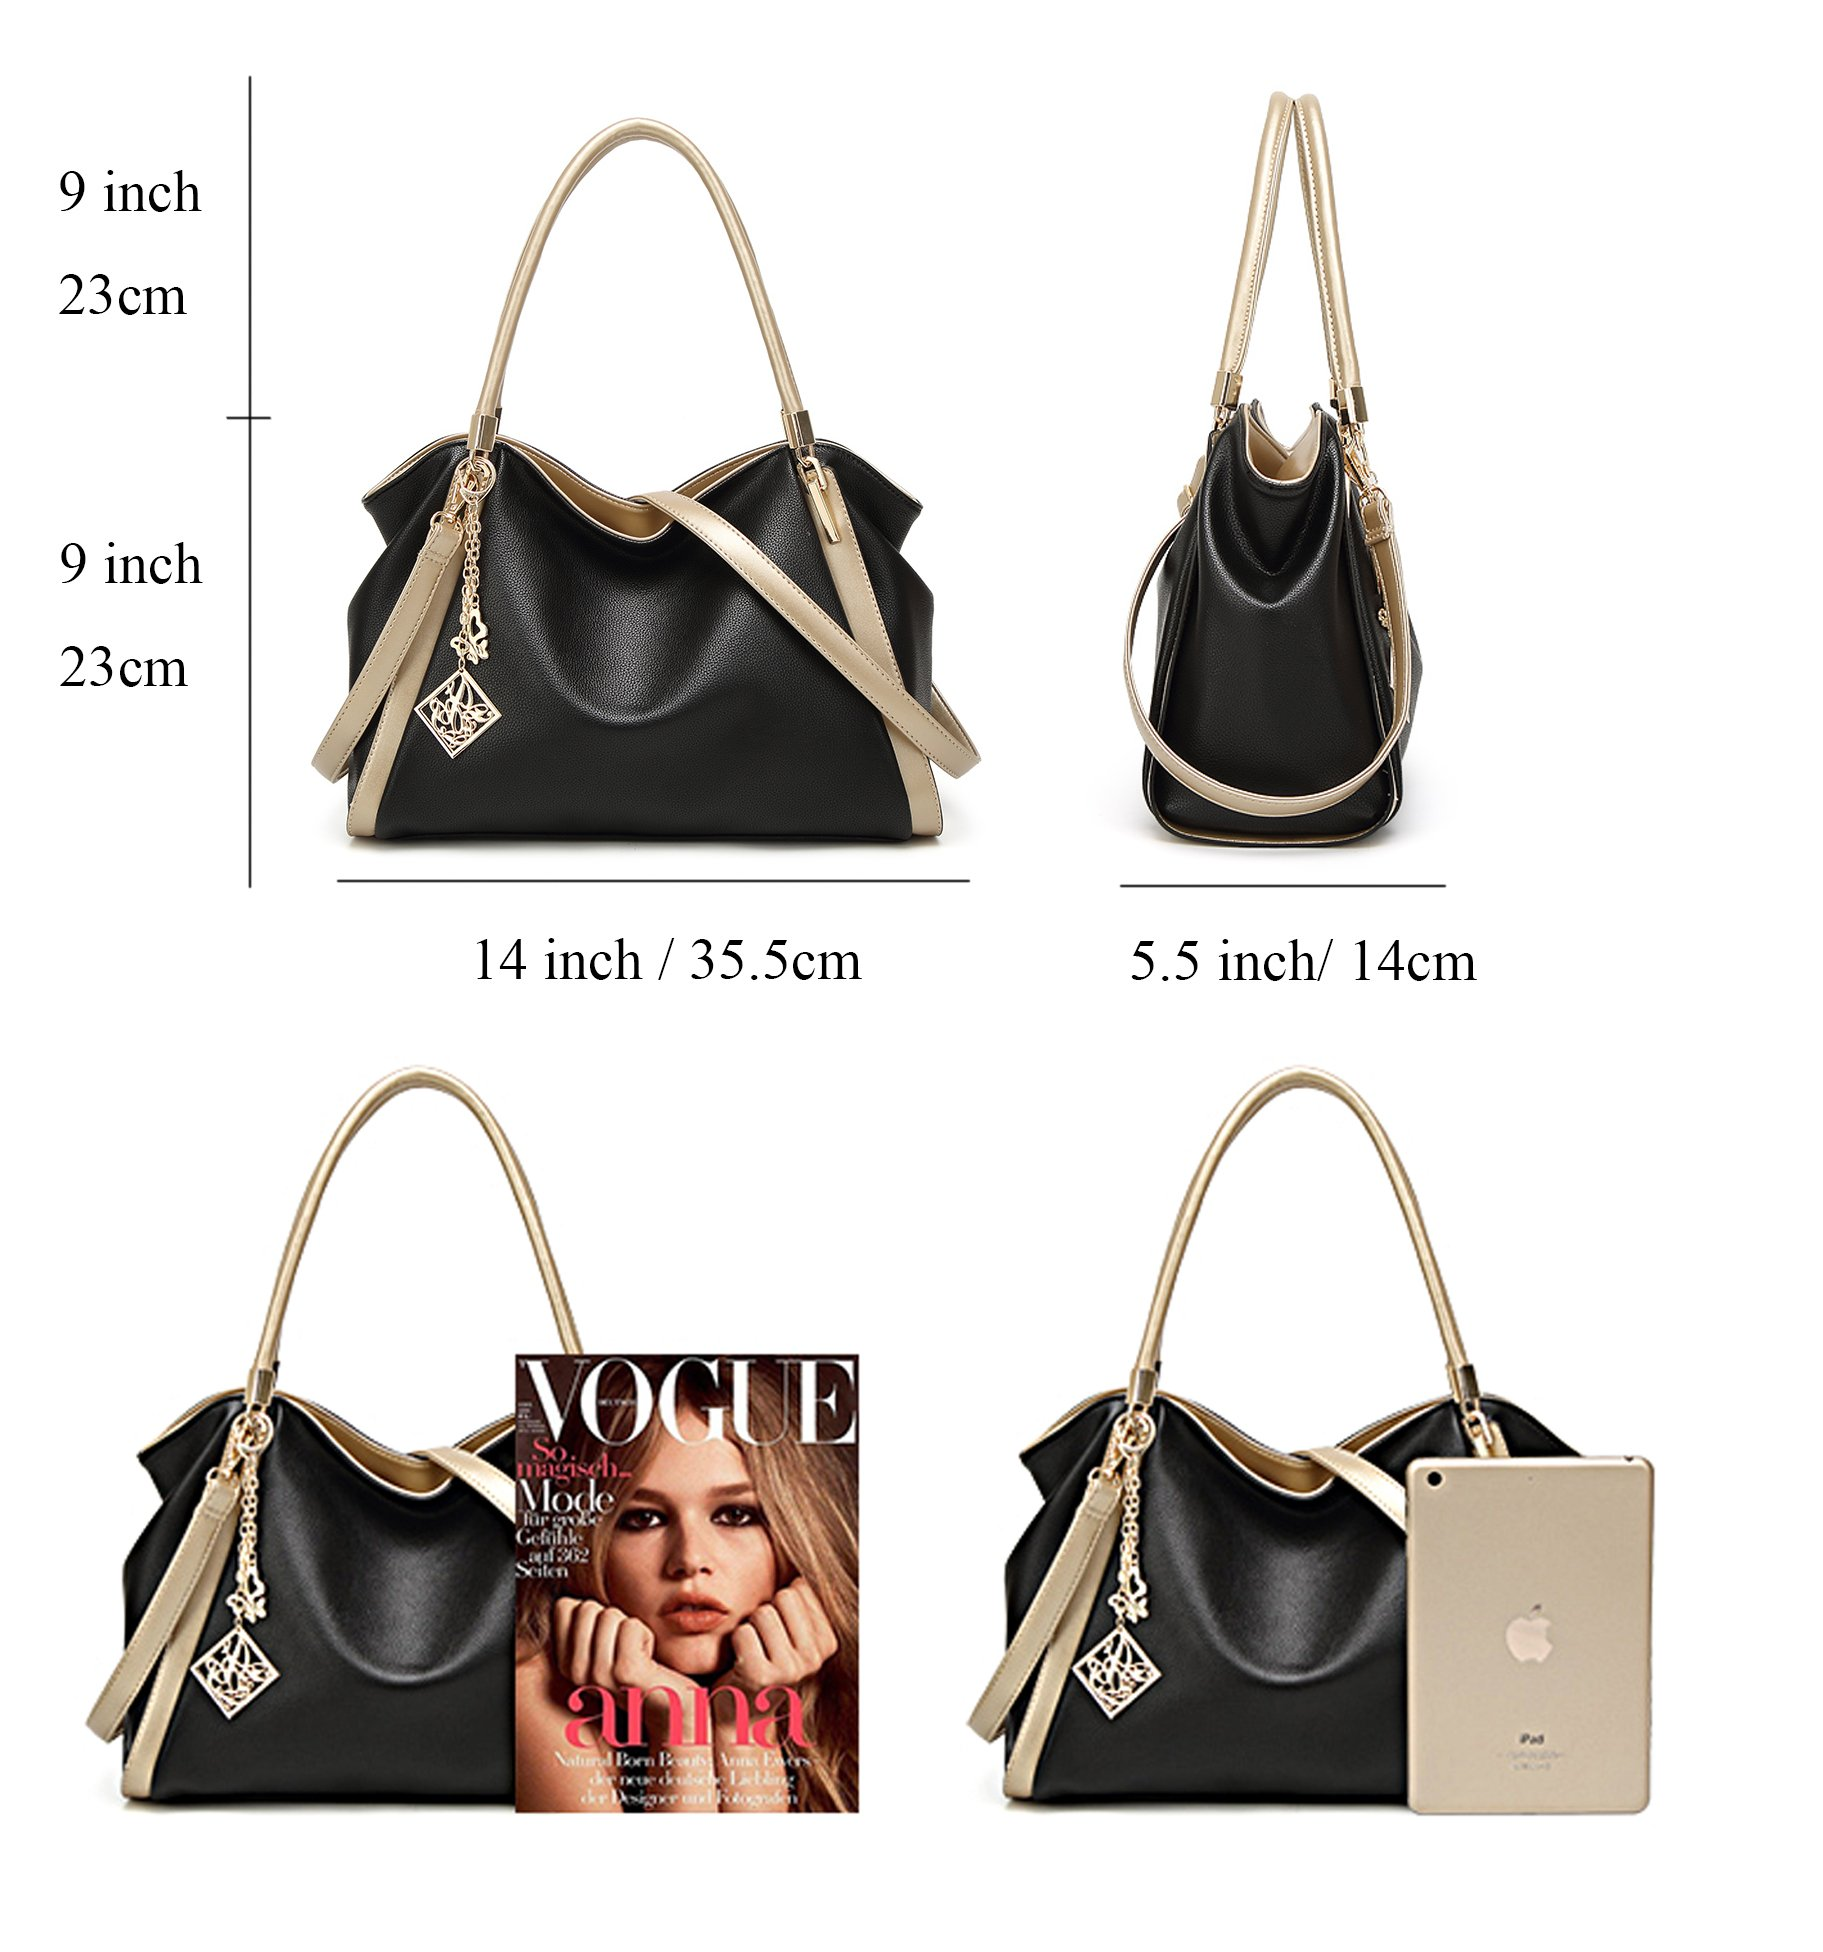 Soft Leather Purse Handbag Large Women Tote Hobo Bag Shoulder Bag Top handle Satchel (black) by LIKE IT LOVE IT (Image #3)